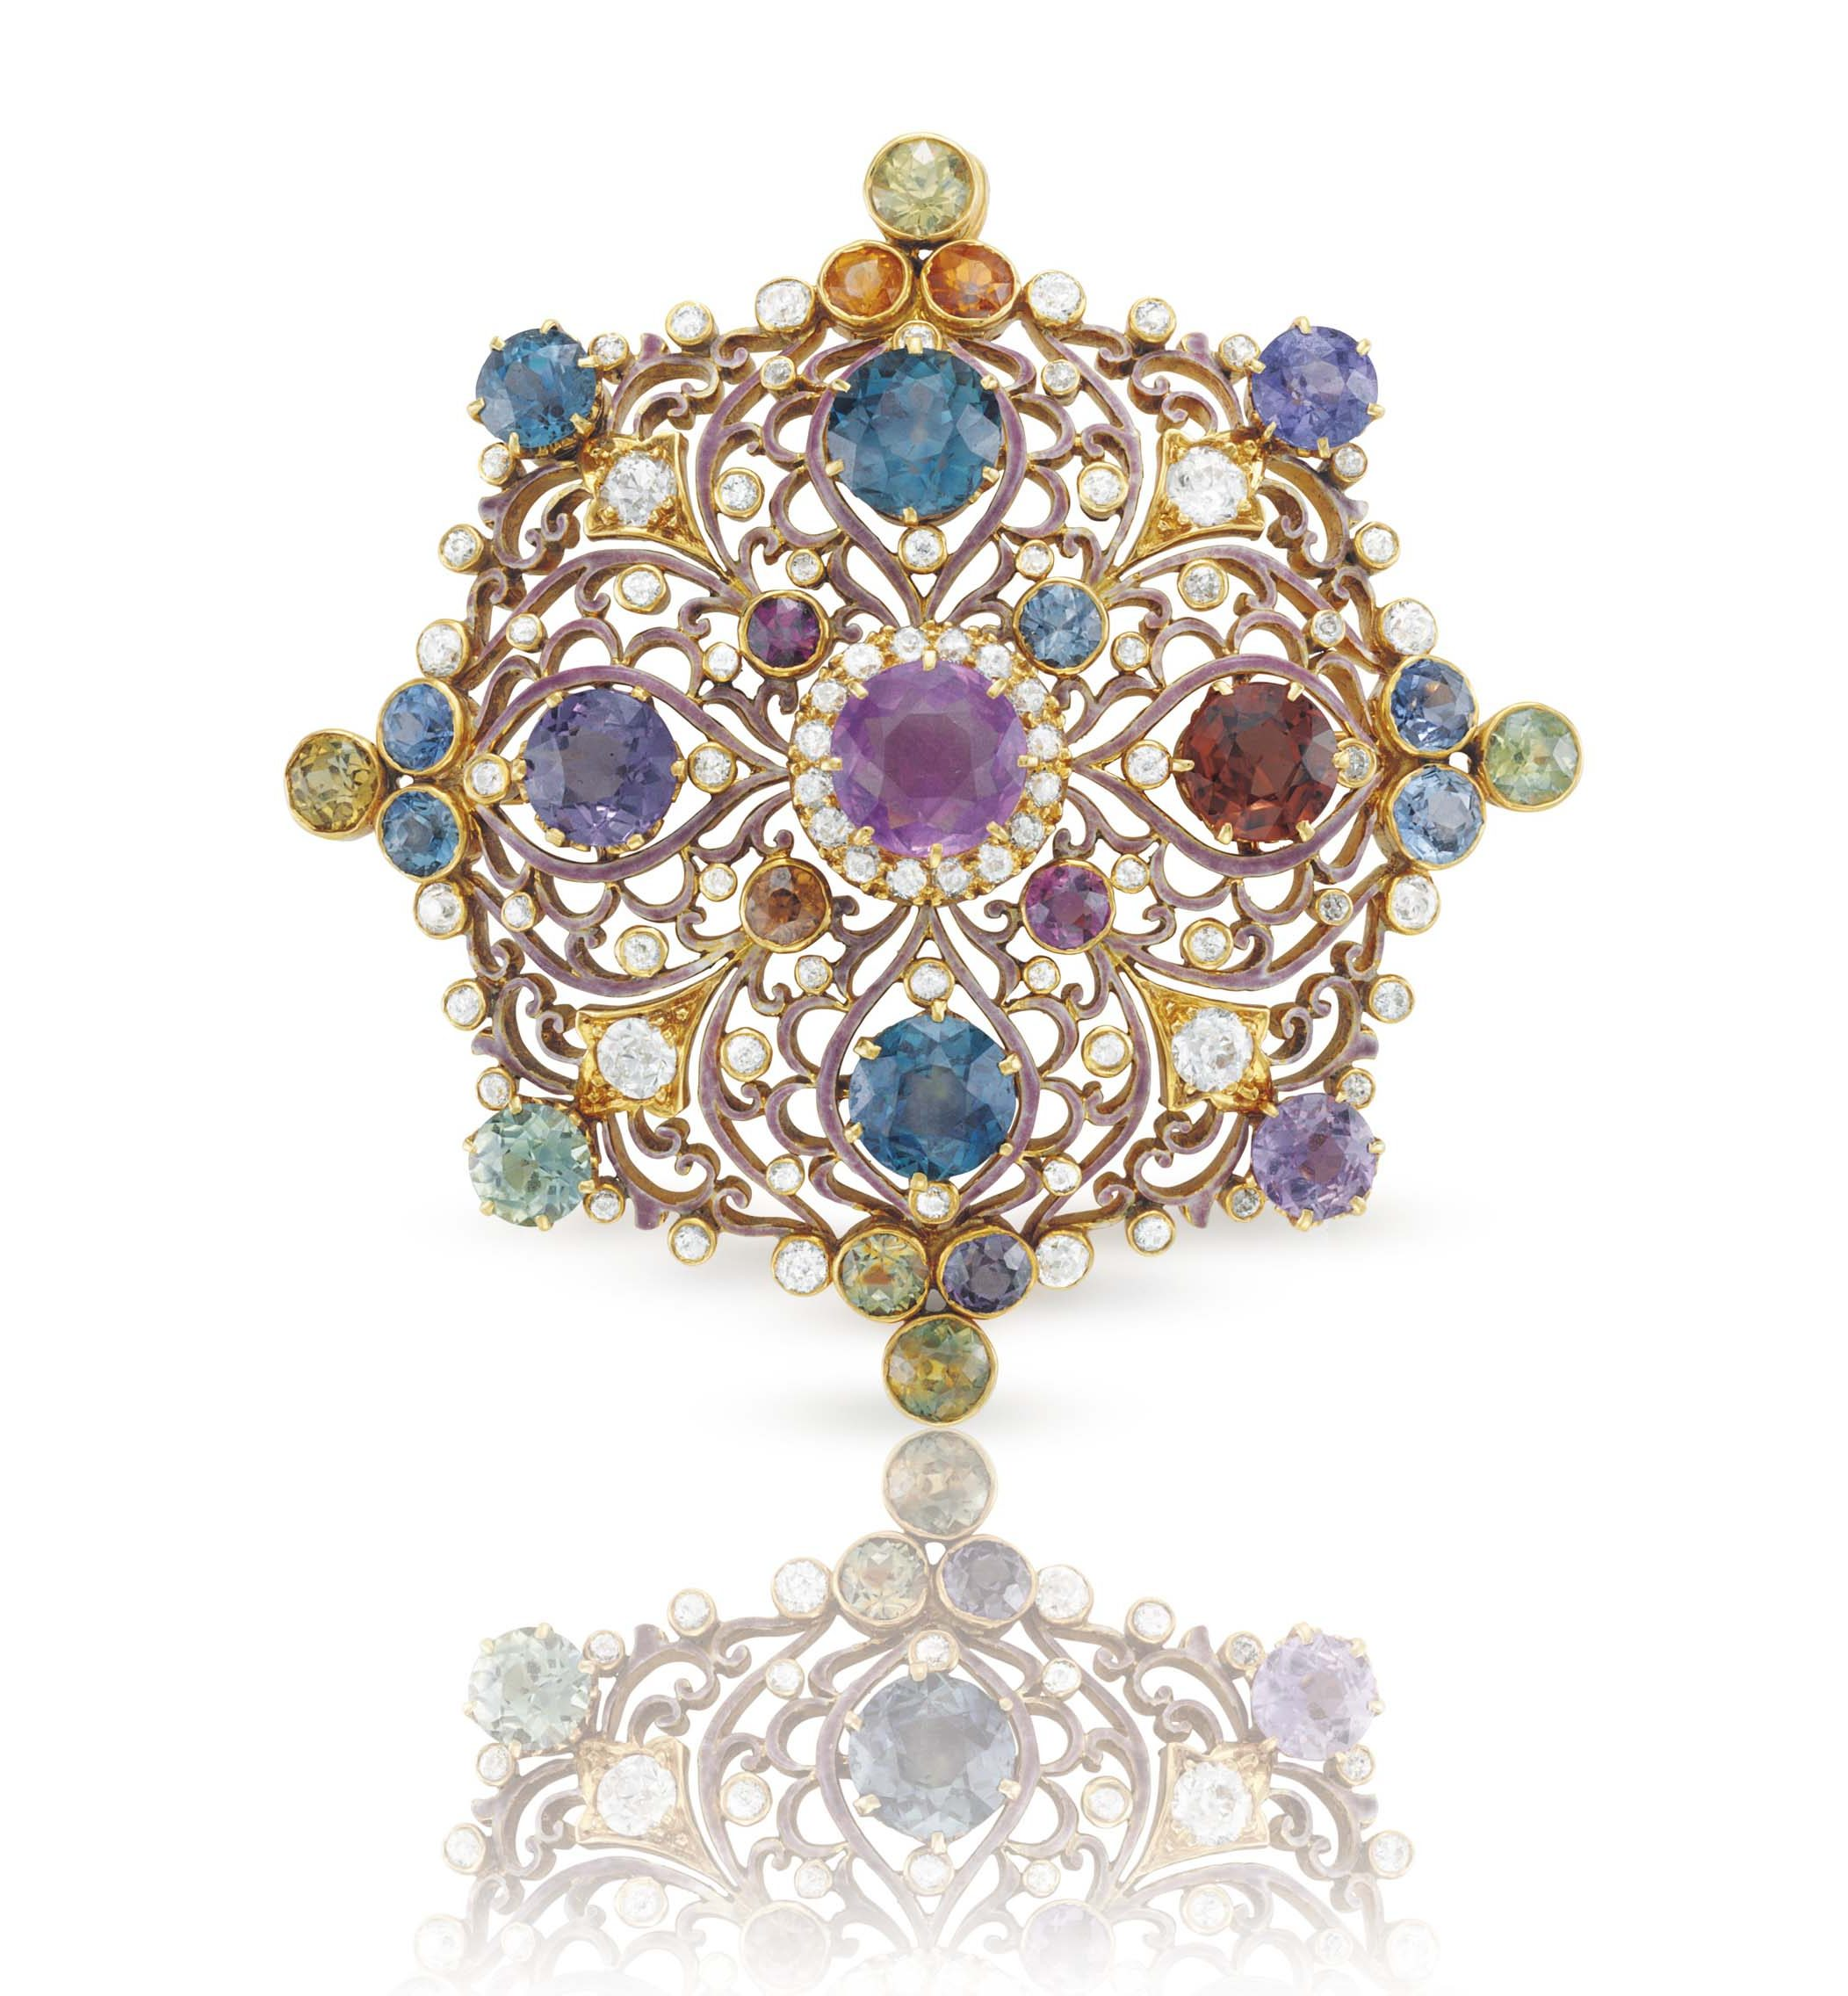 carlo chrysoprase maxwidth an diamond circa arthur and giuliano products brooch maxheight antique sapphire